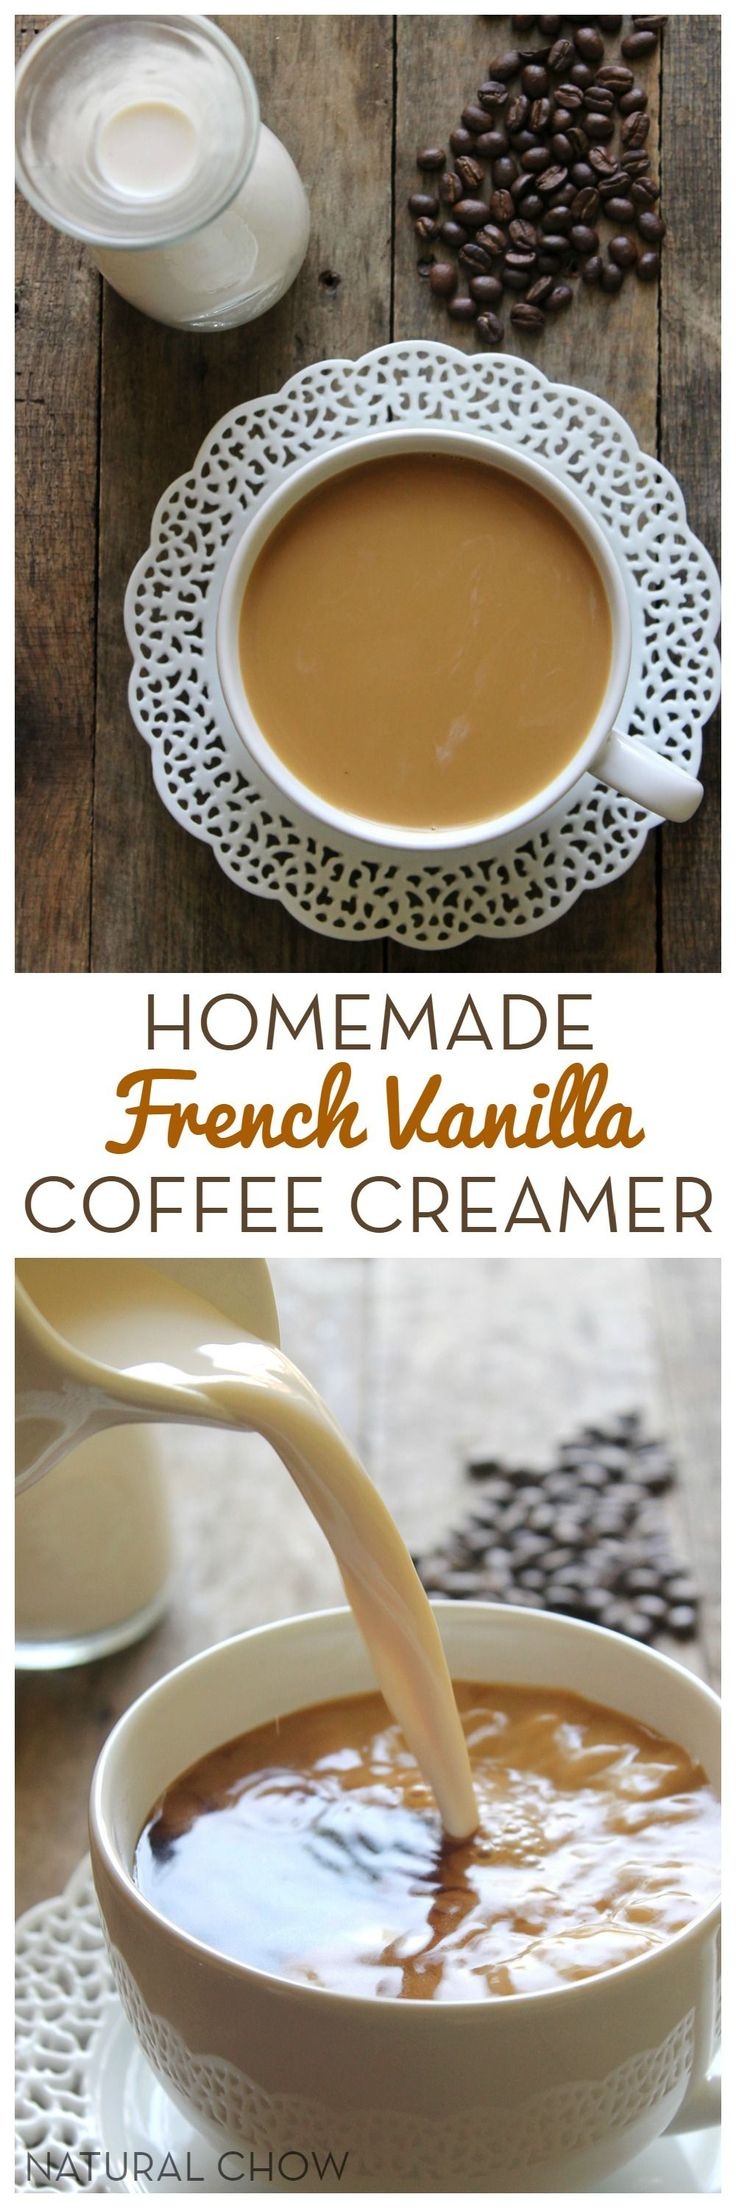 tiffany bracelets silver Homemade French Vanilla Coffee Creamer    This homemade french vanilla coffee creamer only takes 5 minutes to make and is such a kitchen staple  Made with 3 simple ingredients  it  39 s so much healthier than storebought creamer